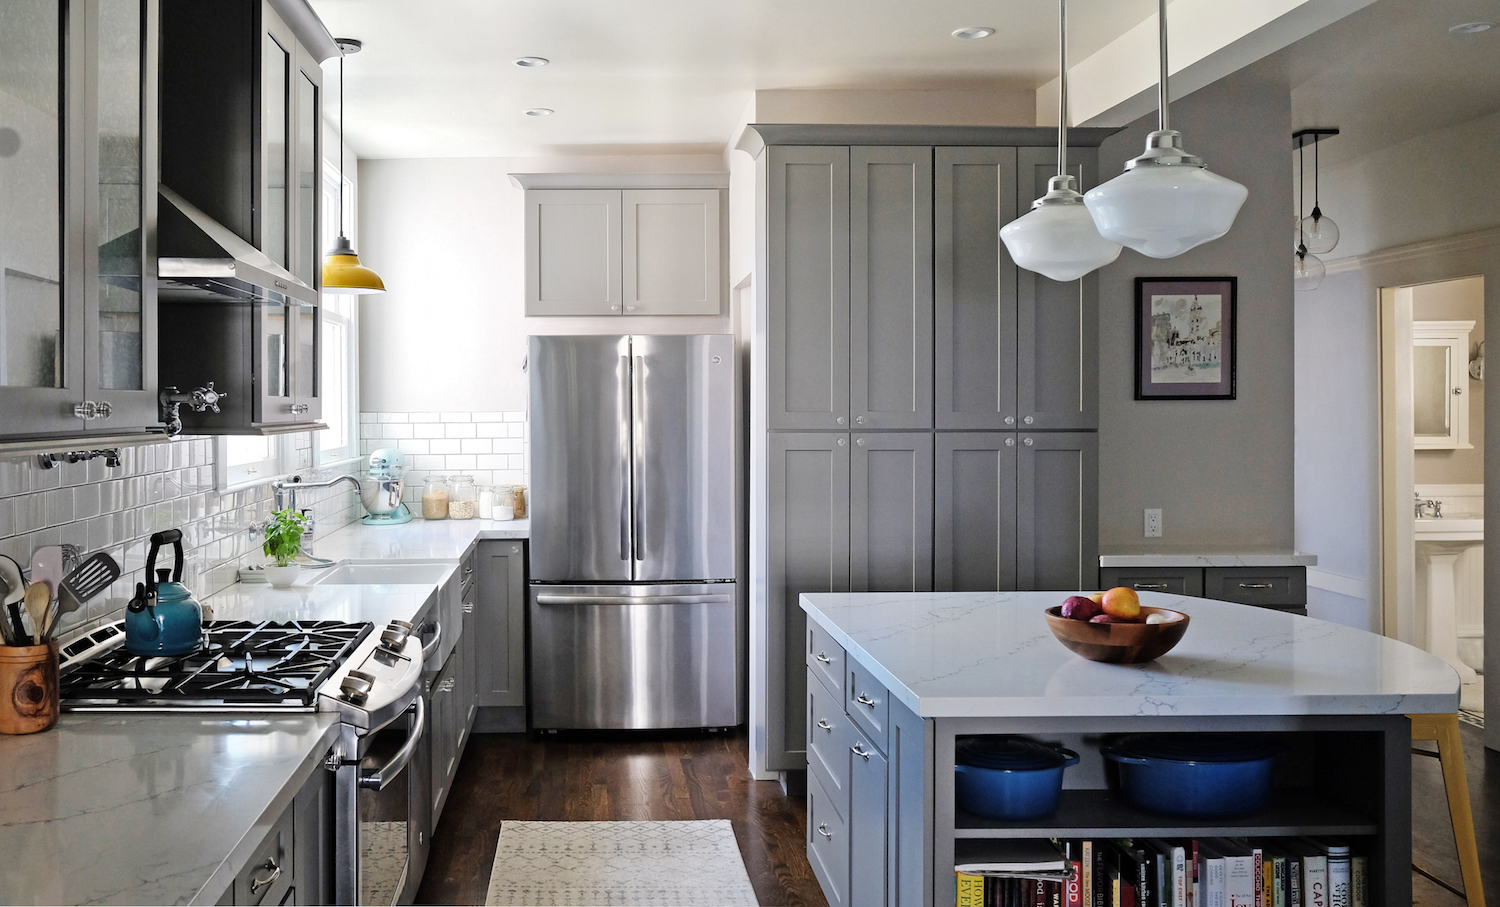 grey and white kitchen with wood flooring and stainless steel appliances.jpg